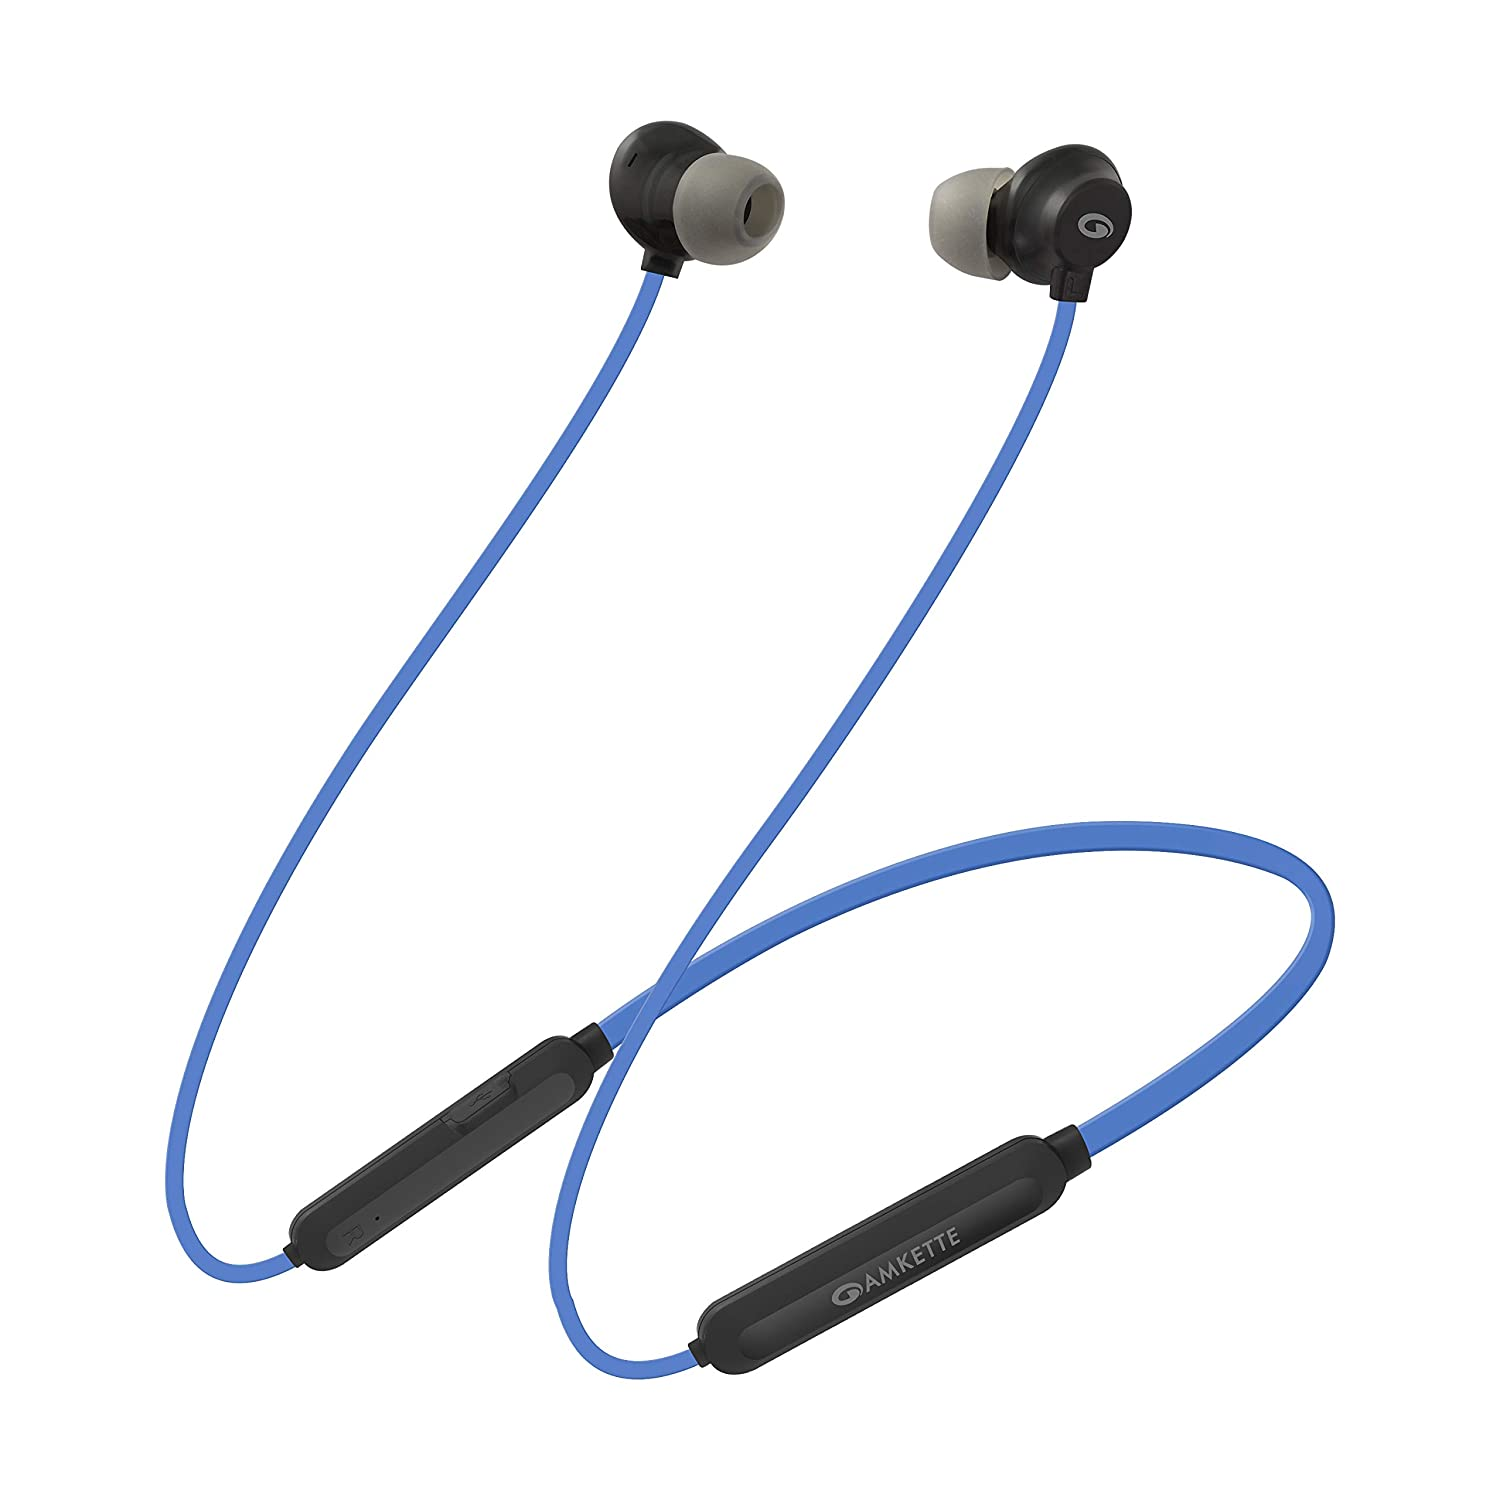 Amkette Urban X6 Bluetooth Headphones with in-line Mic Controls, Voice Assistant, 12 Hours of Playback, IPX5 Sweatproof and Magnetic Earbuds (Blue)